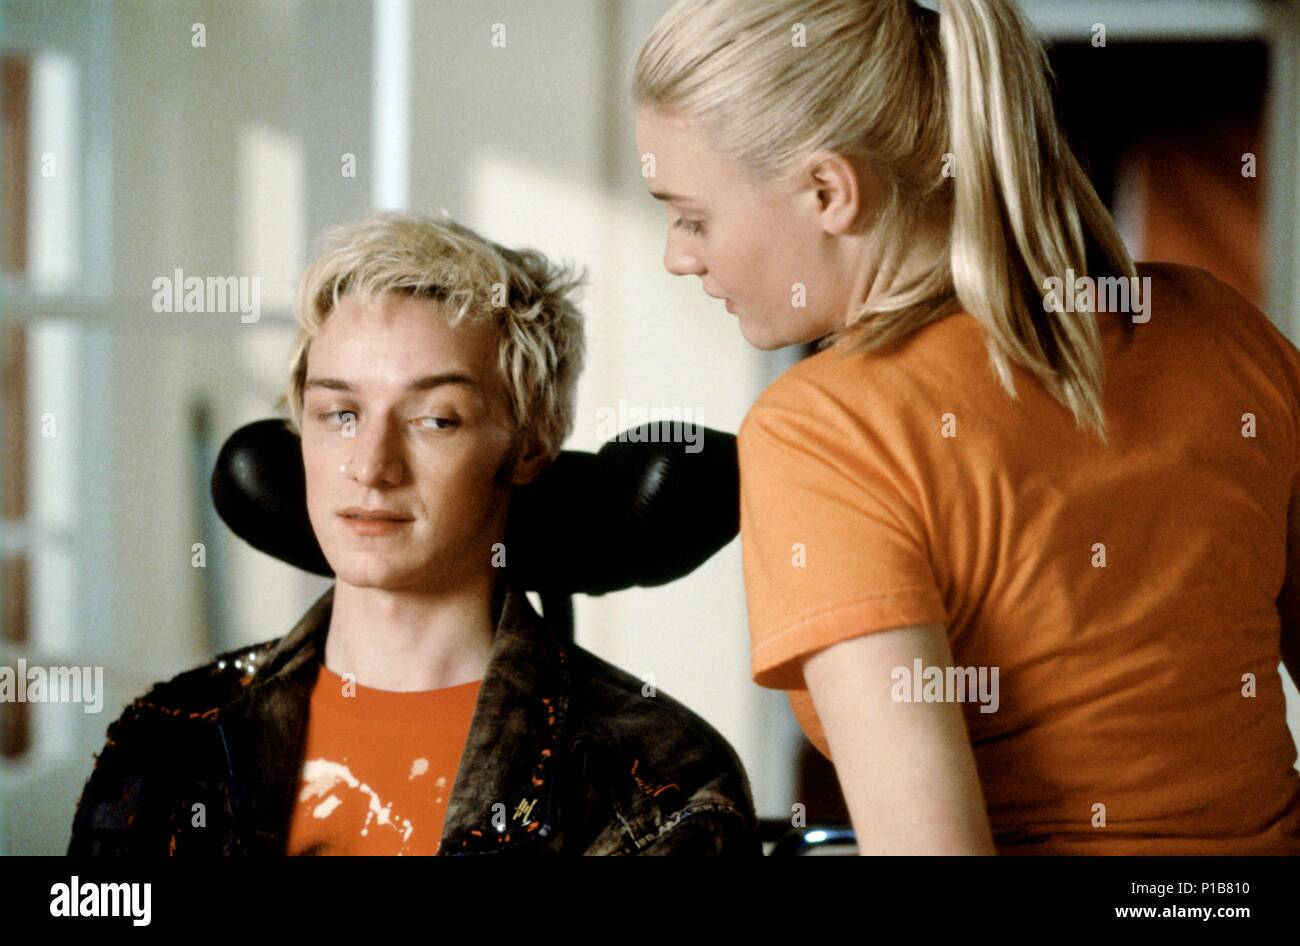 Original Film Title: INSIDE I'M DANCING.  English Title: RORY O'SHEA WAS HERE.  Film Director: DAMIEN O'DONNELL.  Year: 2004.  Stars: ROMOLA GARAI; JAMES MCAVOY. Credit: FOCUS FEATURES / Album - Stock Image